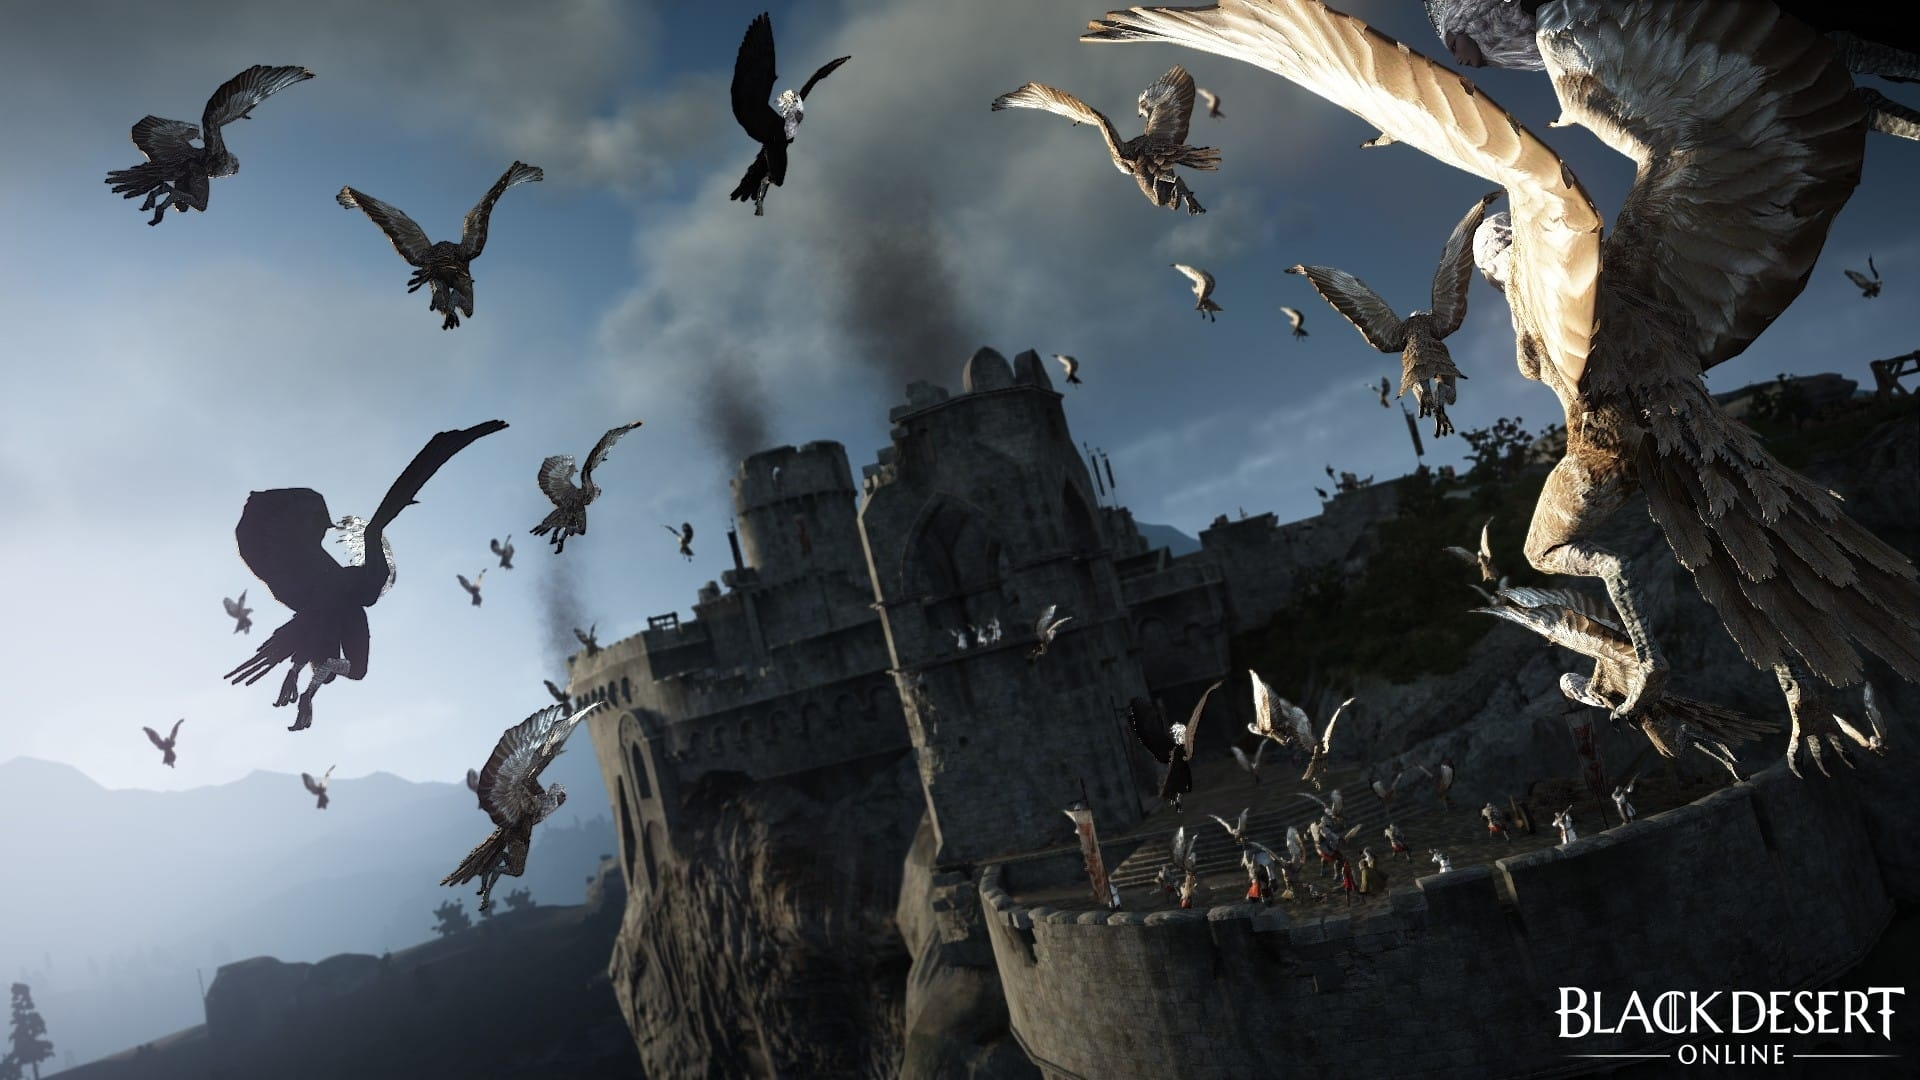 black desert online accueille l'extension kamasylvia - zone actu gaming